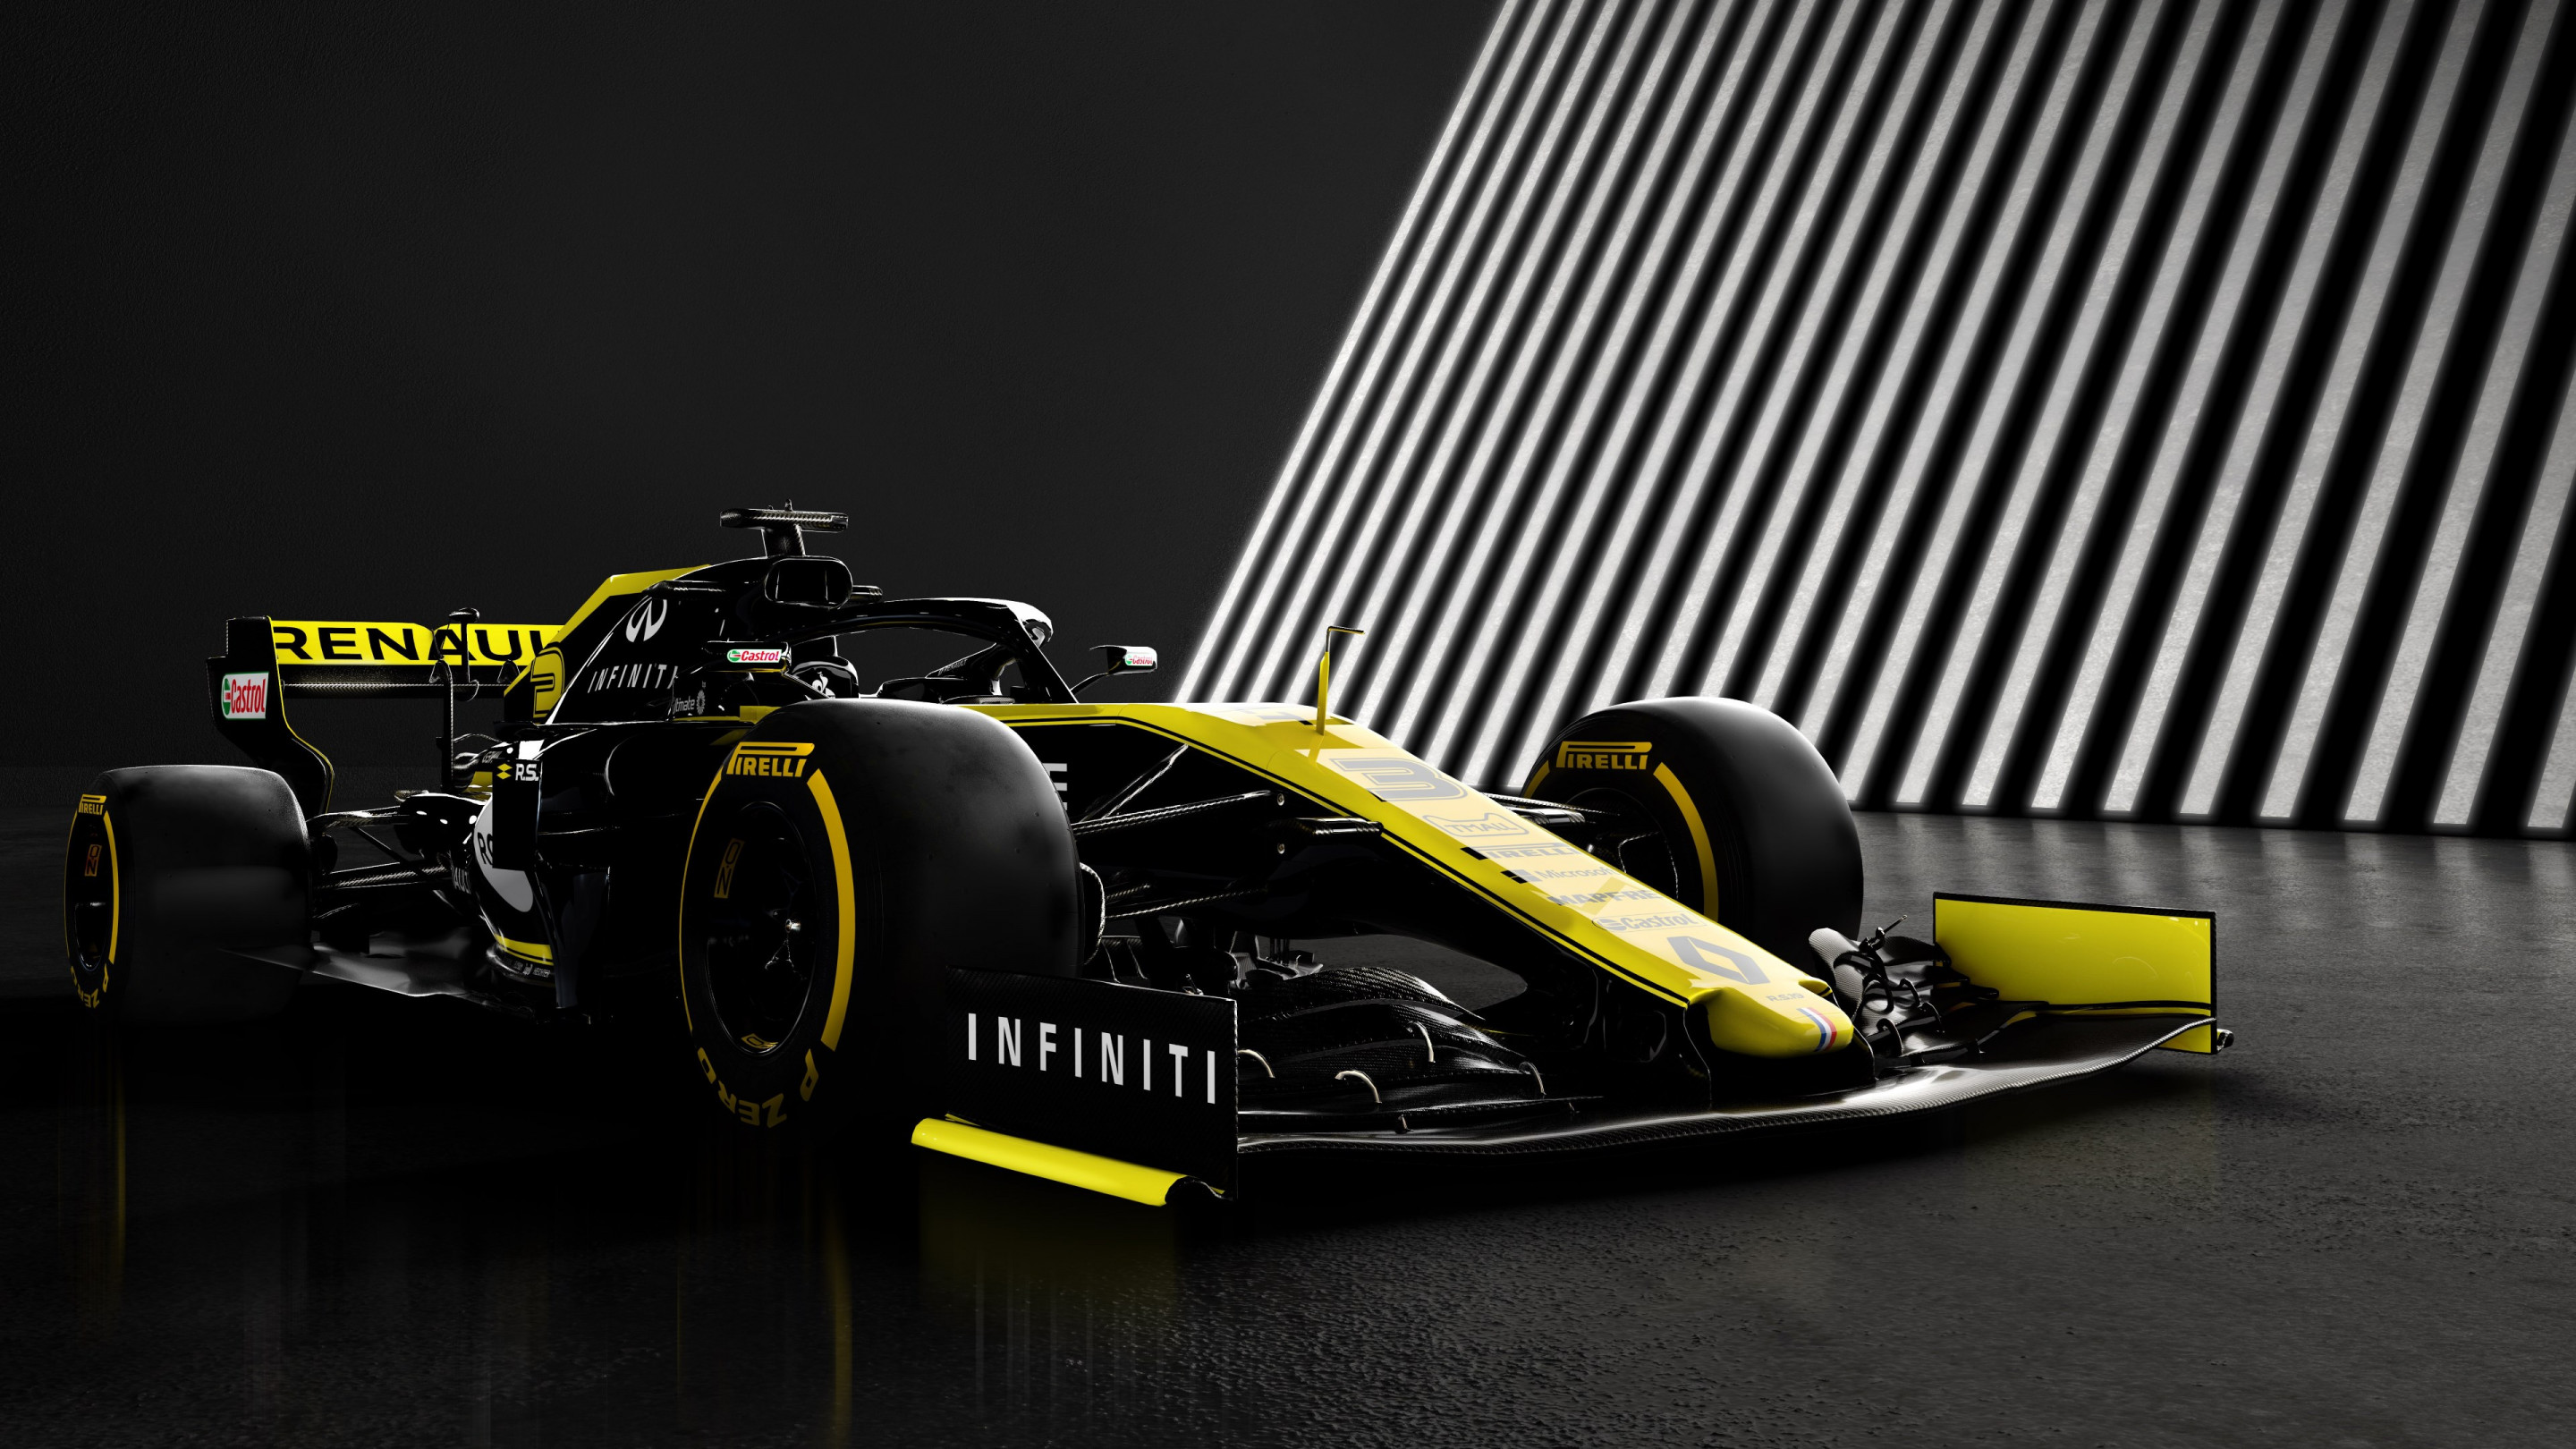 Download wallpaper Renault F1 RS19 2880x1620 2880x1620